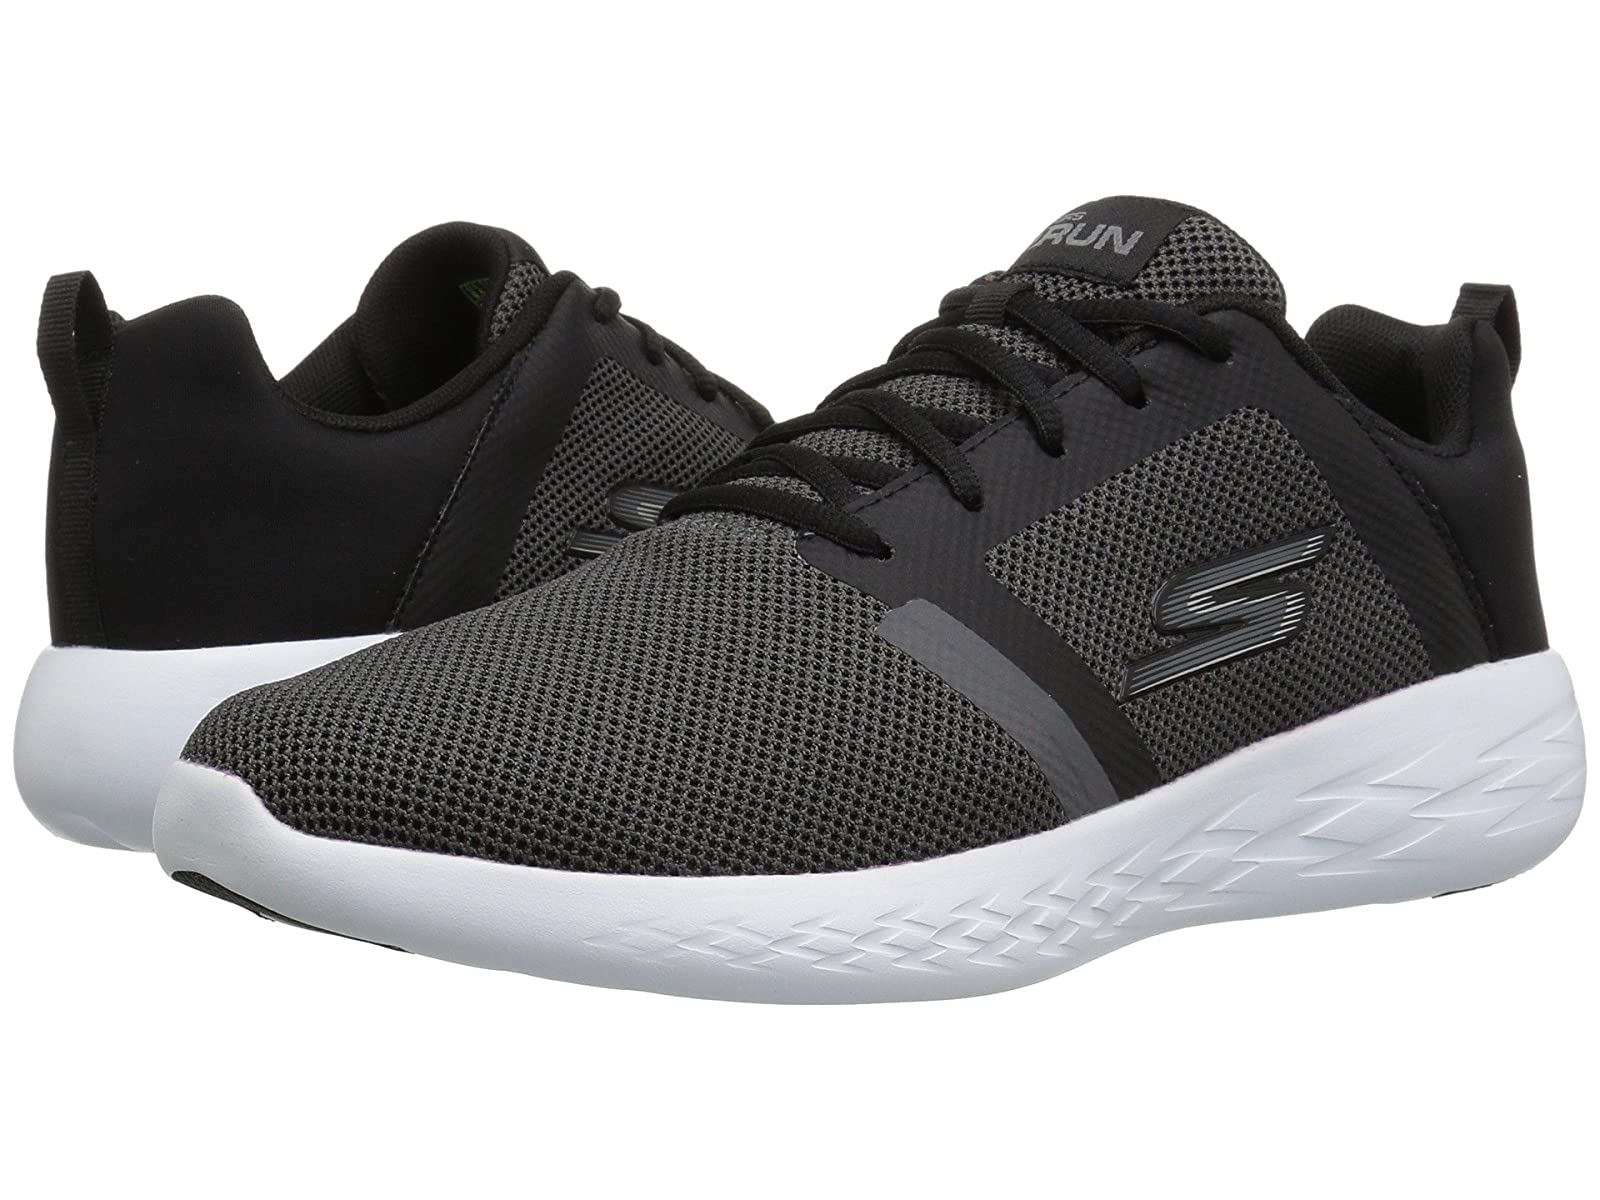 SKECHERS GOrun 600 - RevelCheap and distinctive eye-catching shoes